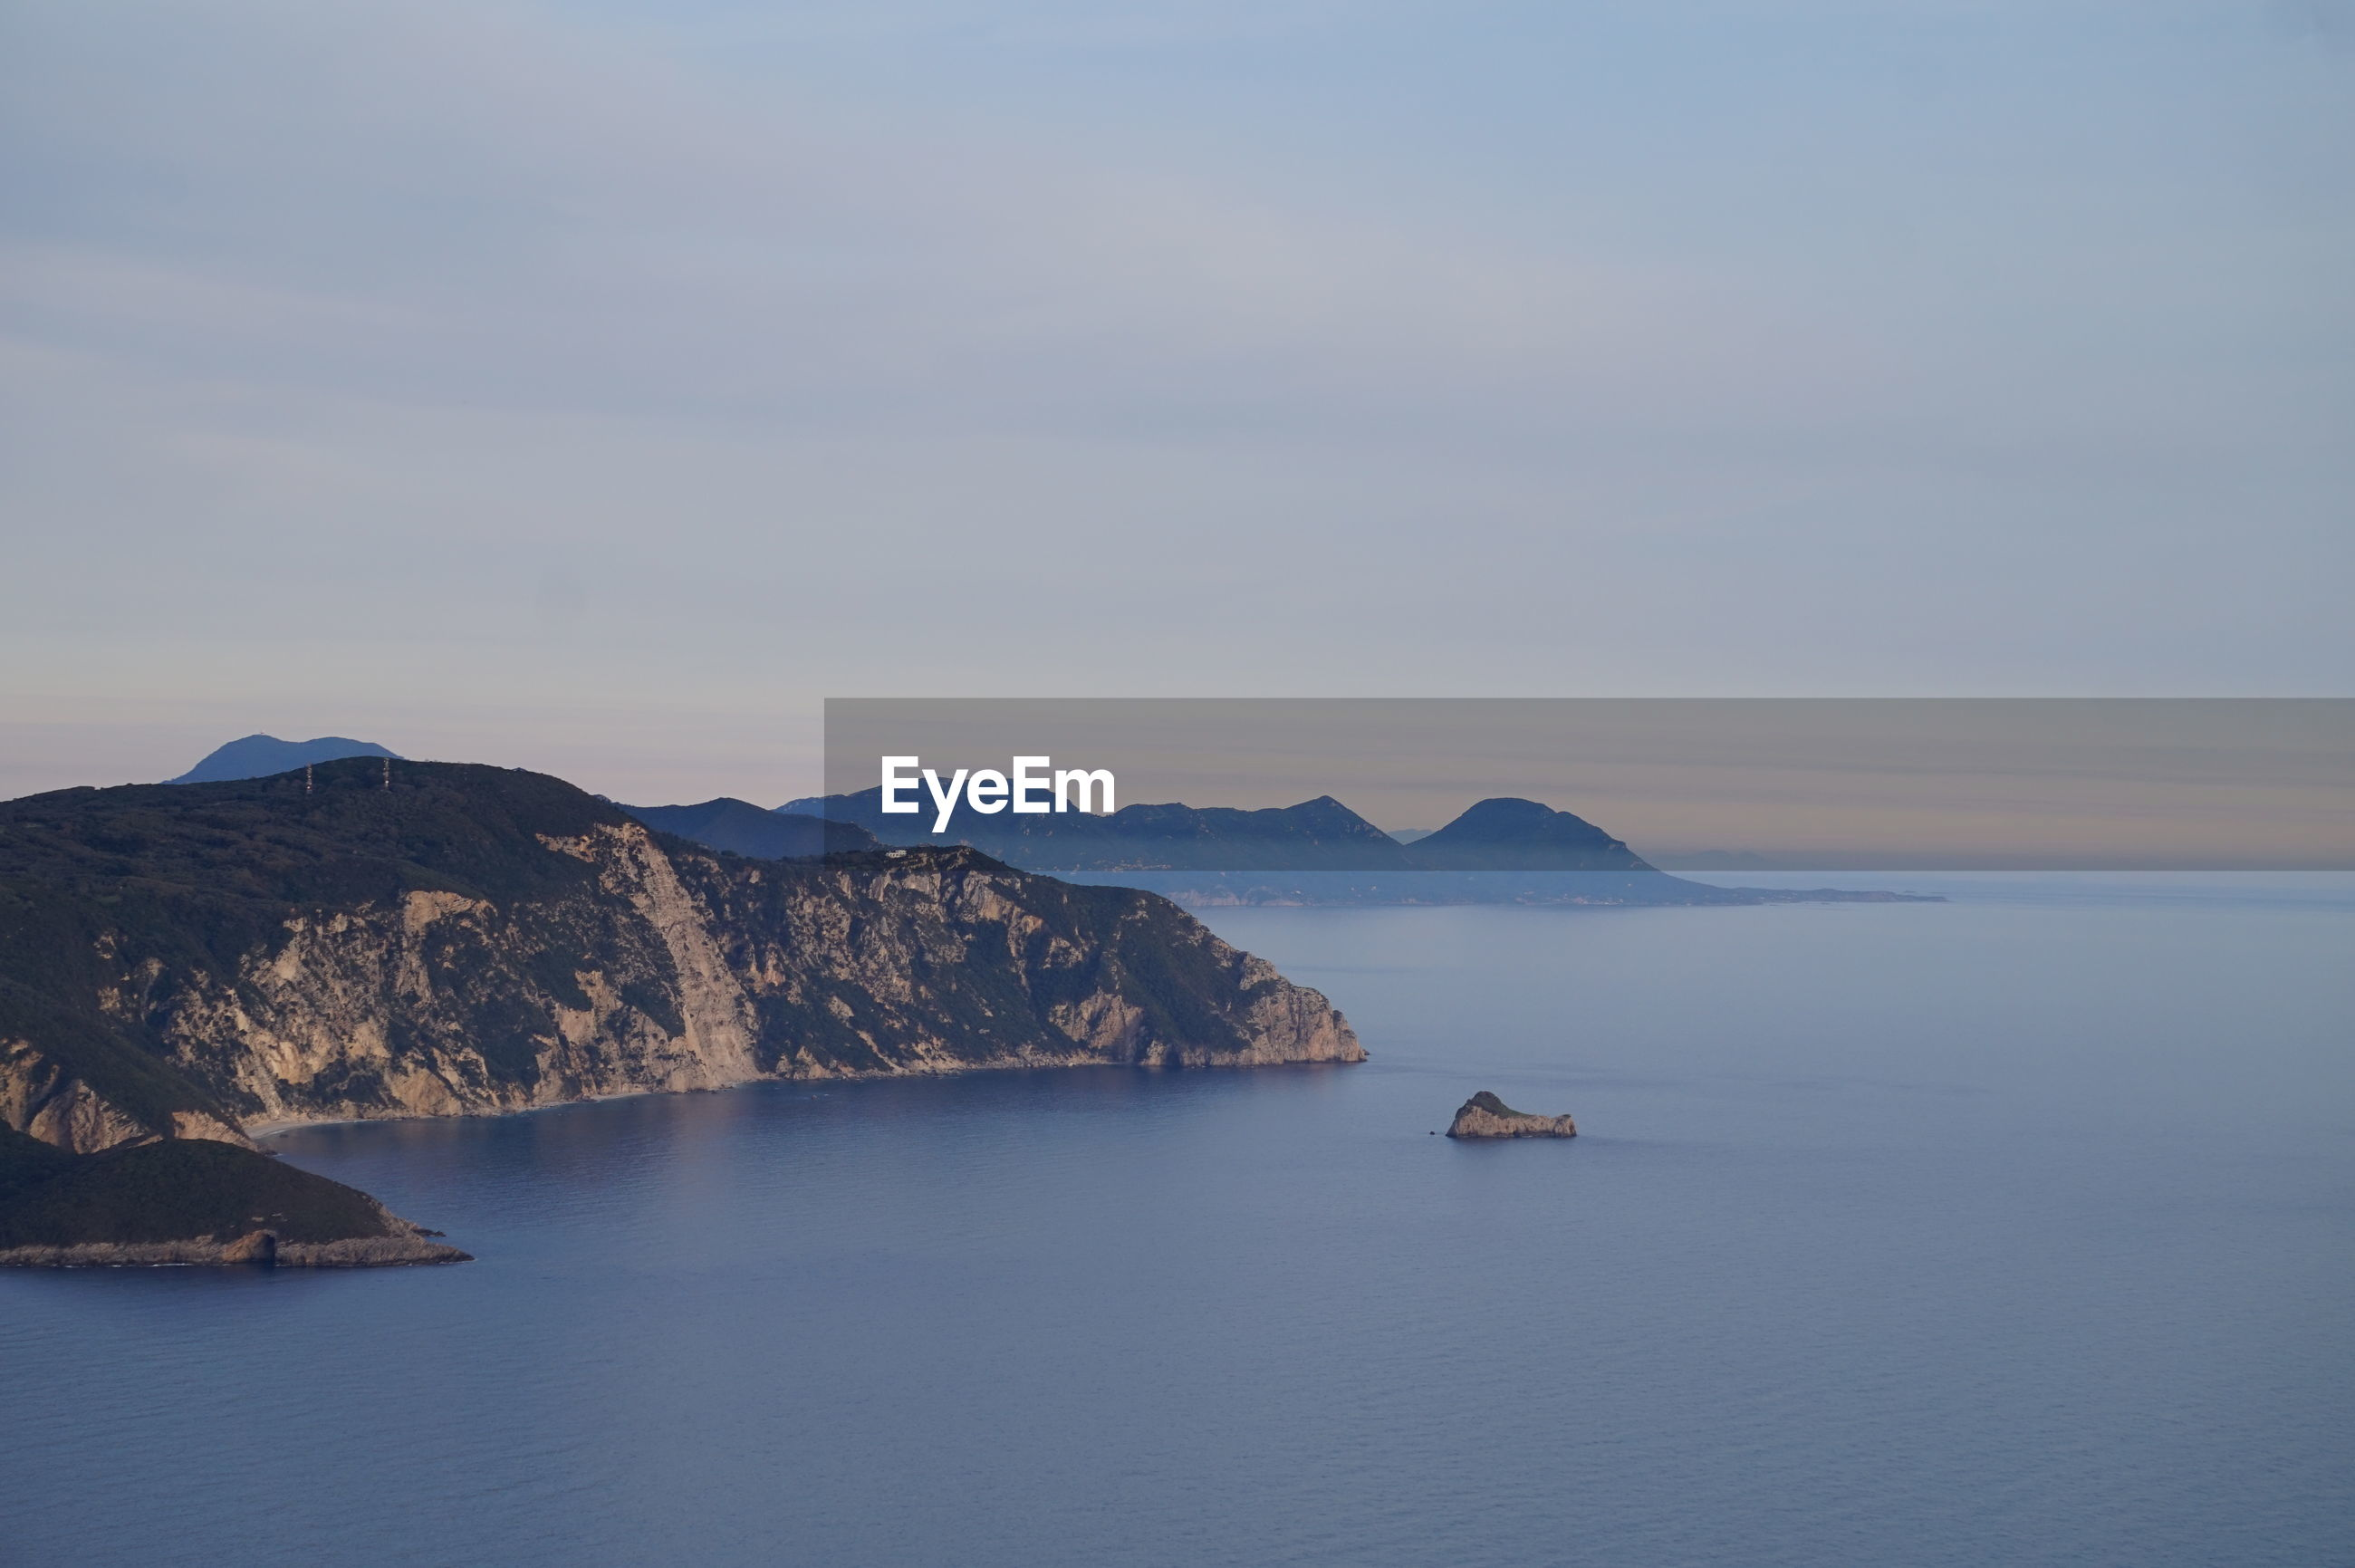 SCENIC VIEW OF SEA AND ROCK FORMATION AGAINST SKY